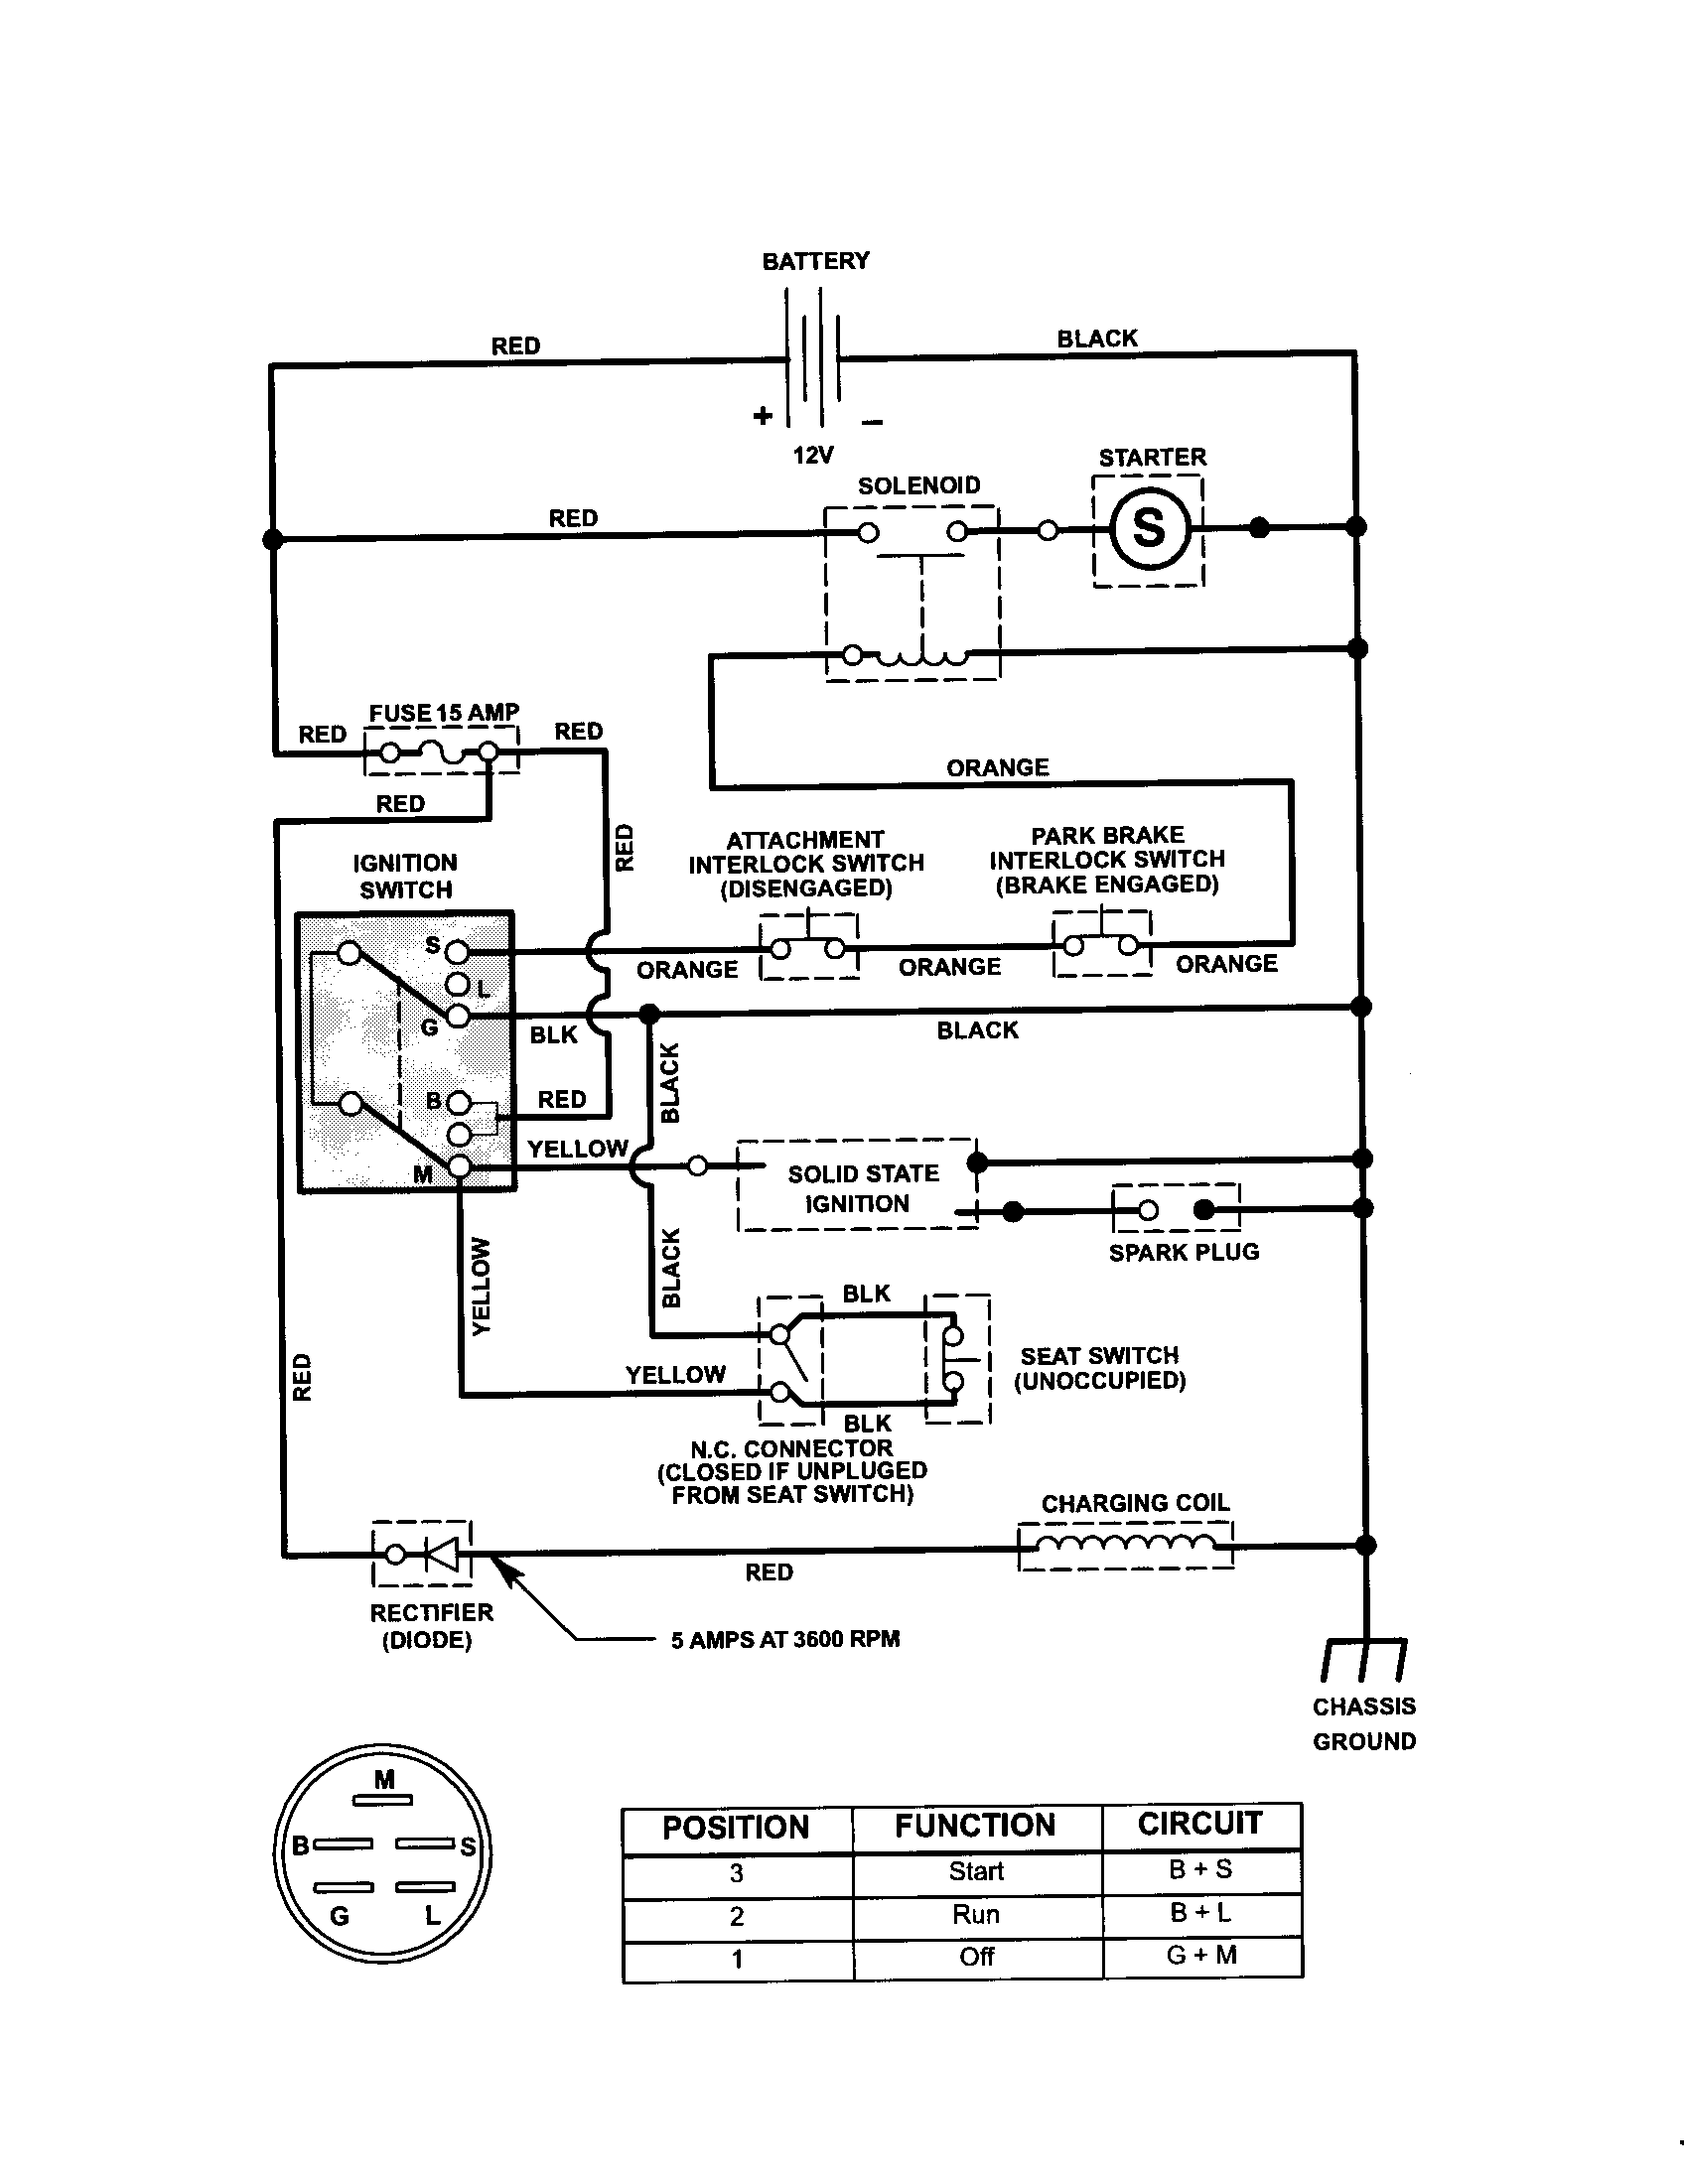 hight resolution of craftsman riding mower electrical diagram pictures of craftsman riding mower electrical diagram